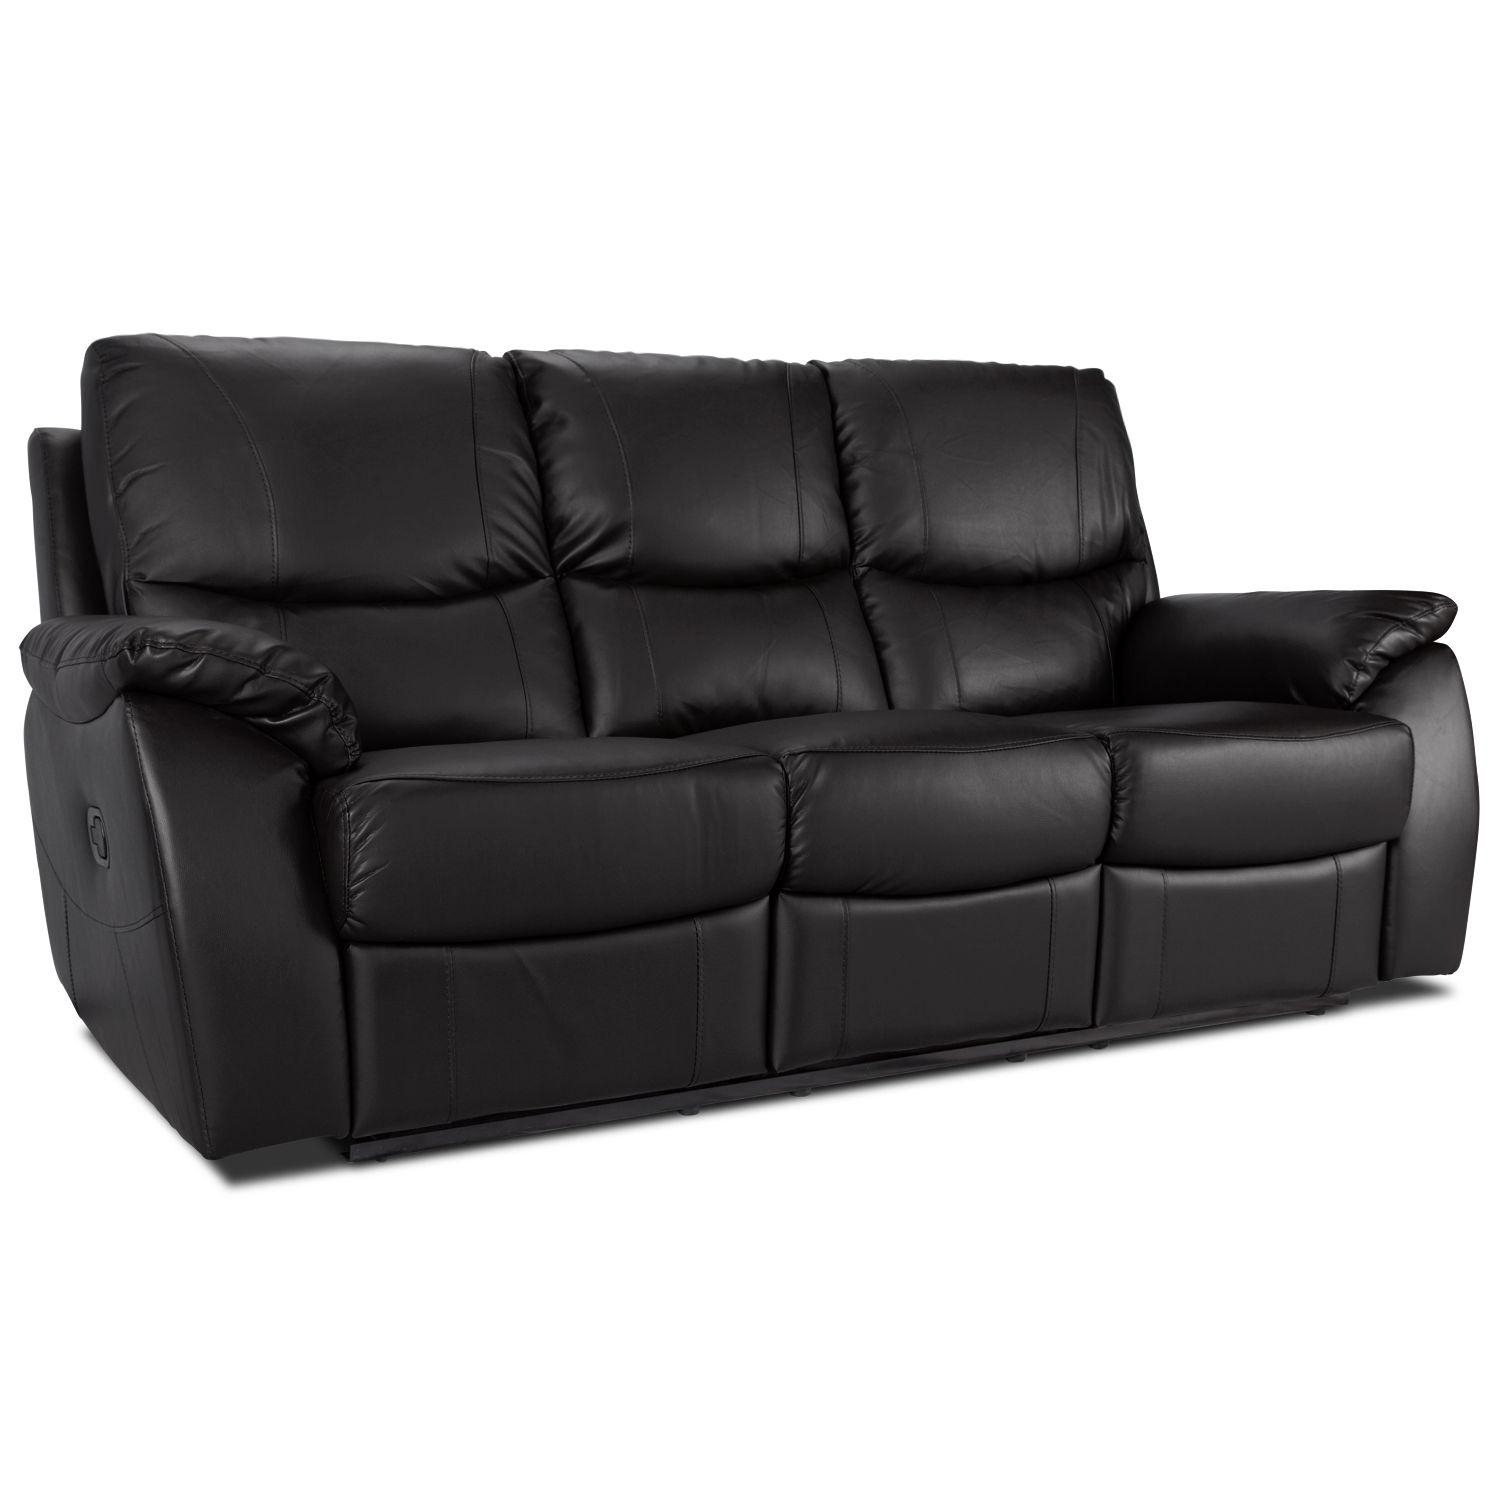 Panther 3 Seater Leather Recliner Sofa – Next Day Delivery Panther With Regard To 3 Seater Leather Sofas (Image 9 of 20)